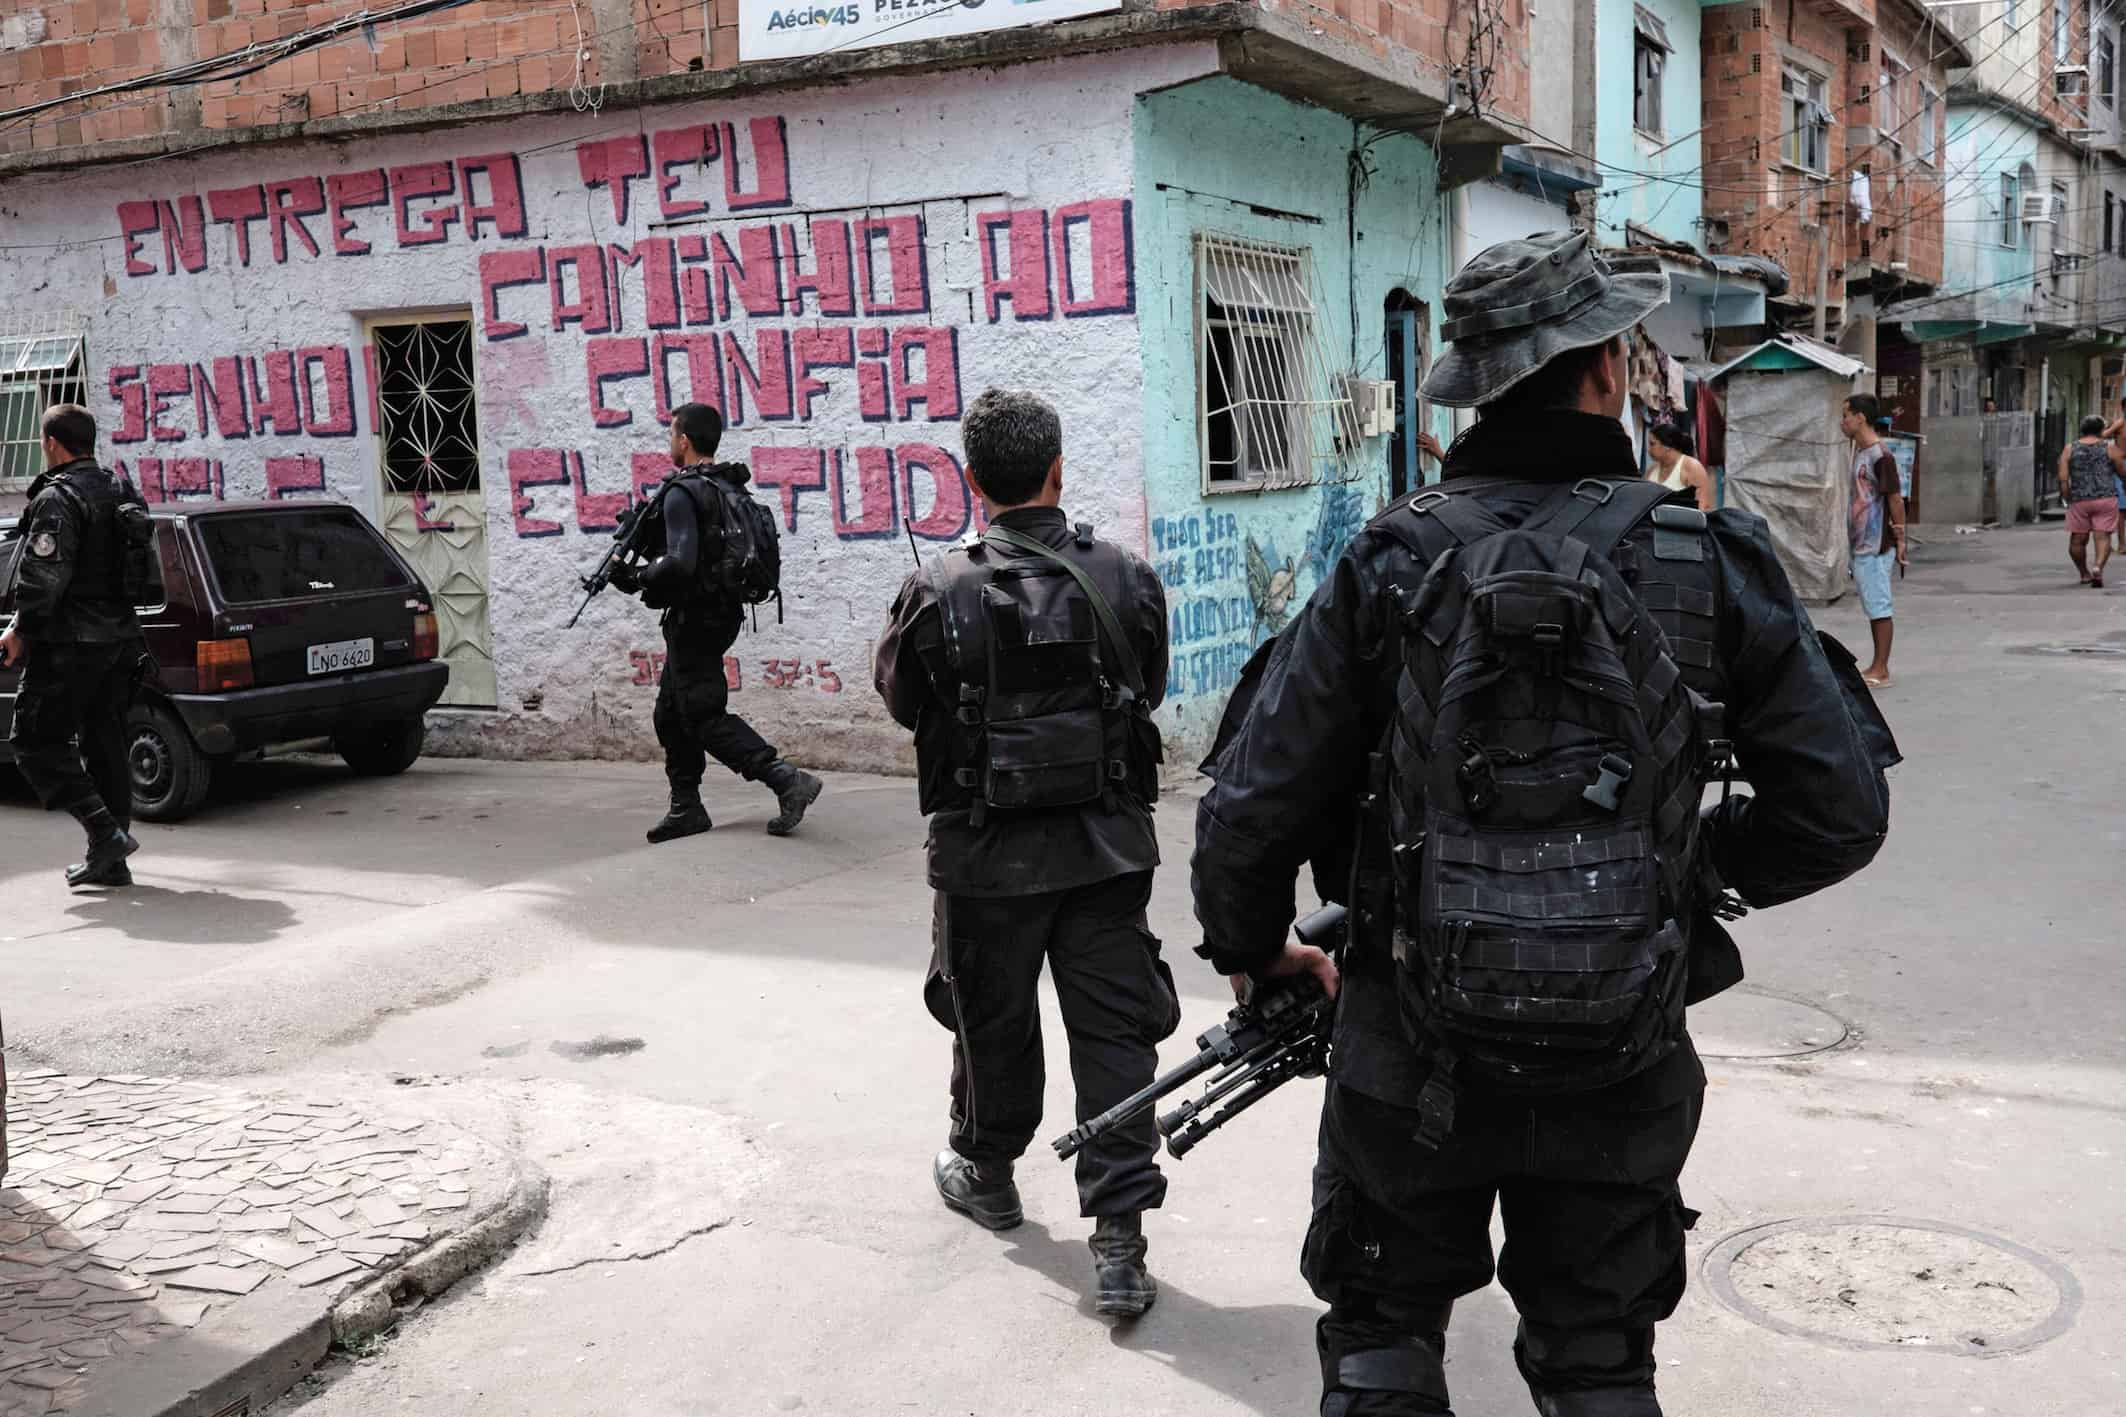 For illustrative purposes only. BOPE police special forces patrol an alley of the Mare shantytown complex in Rio de Janeiro, Brazil, on May 4, 2015.